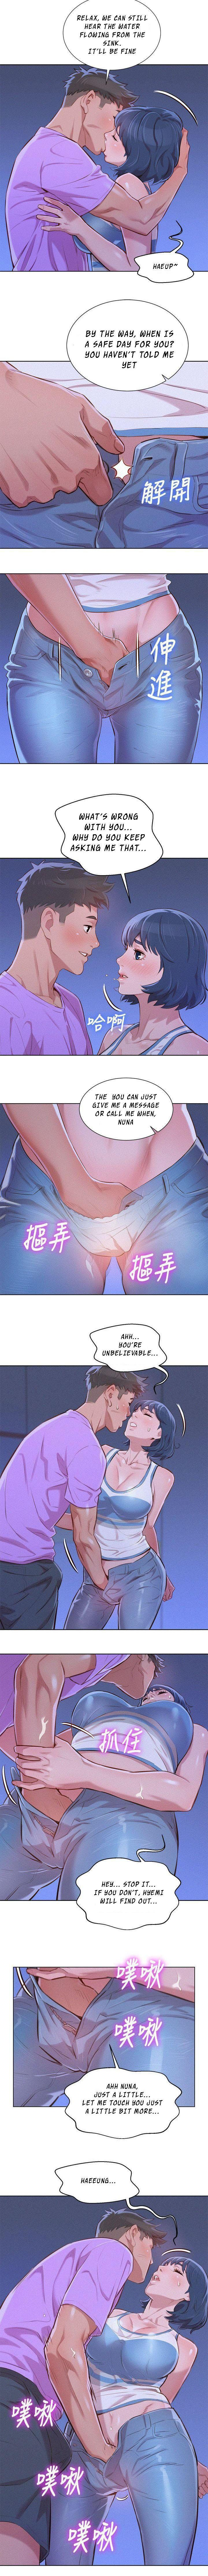 What do you Take me For? Ch.70/? 423